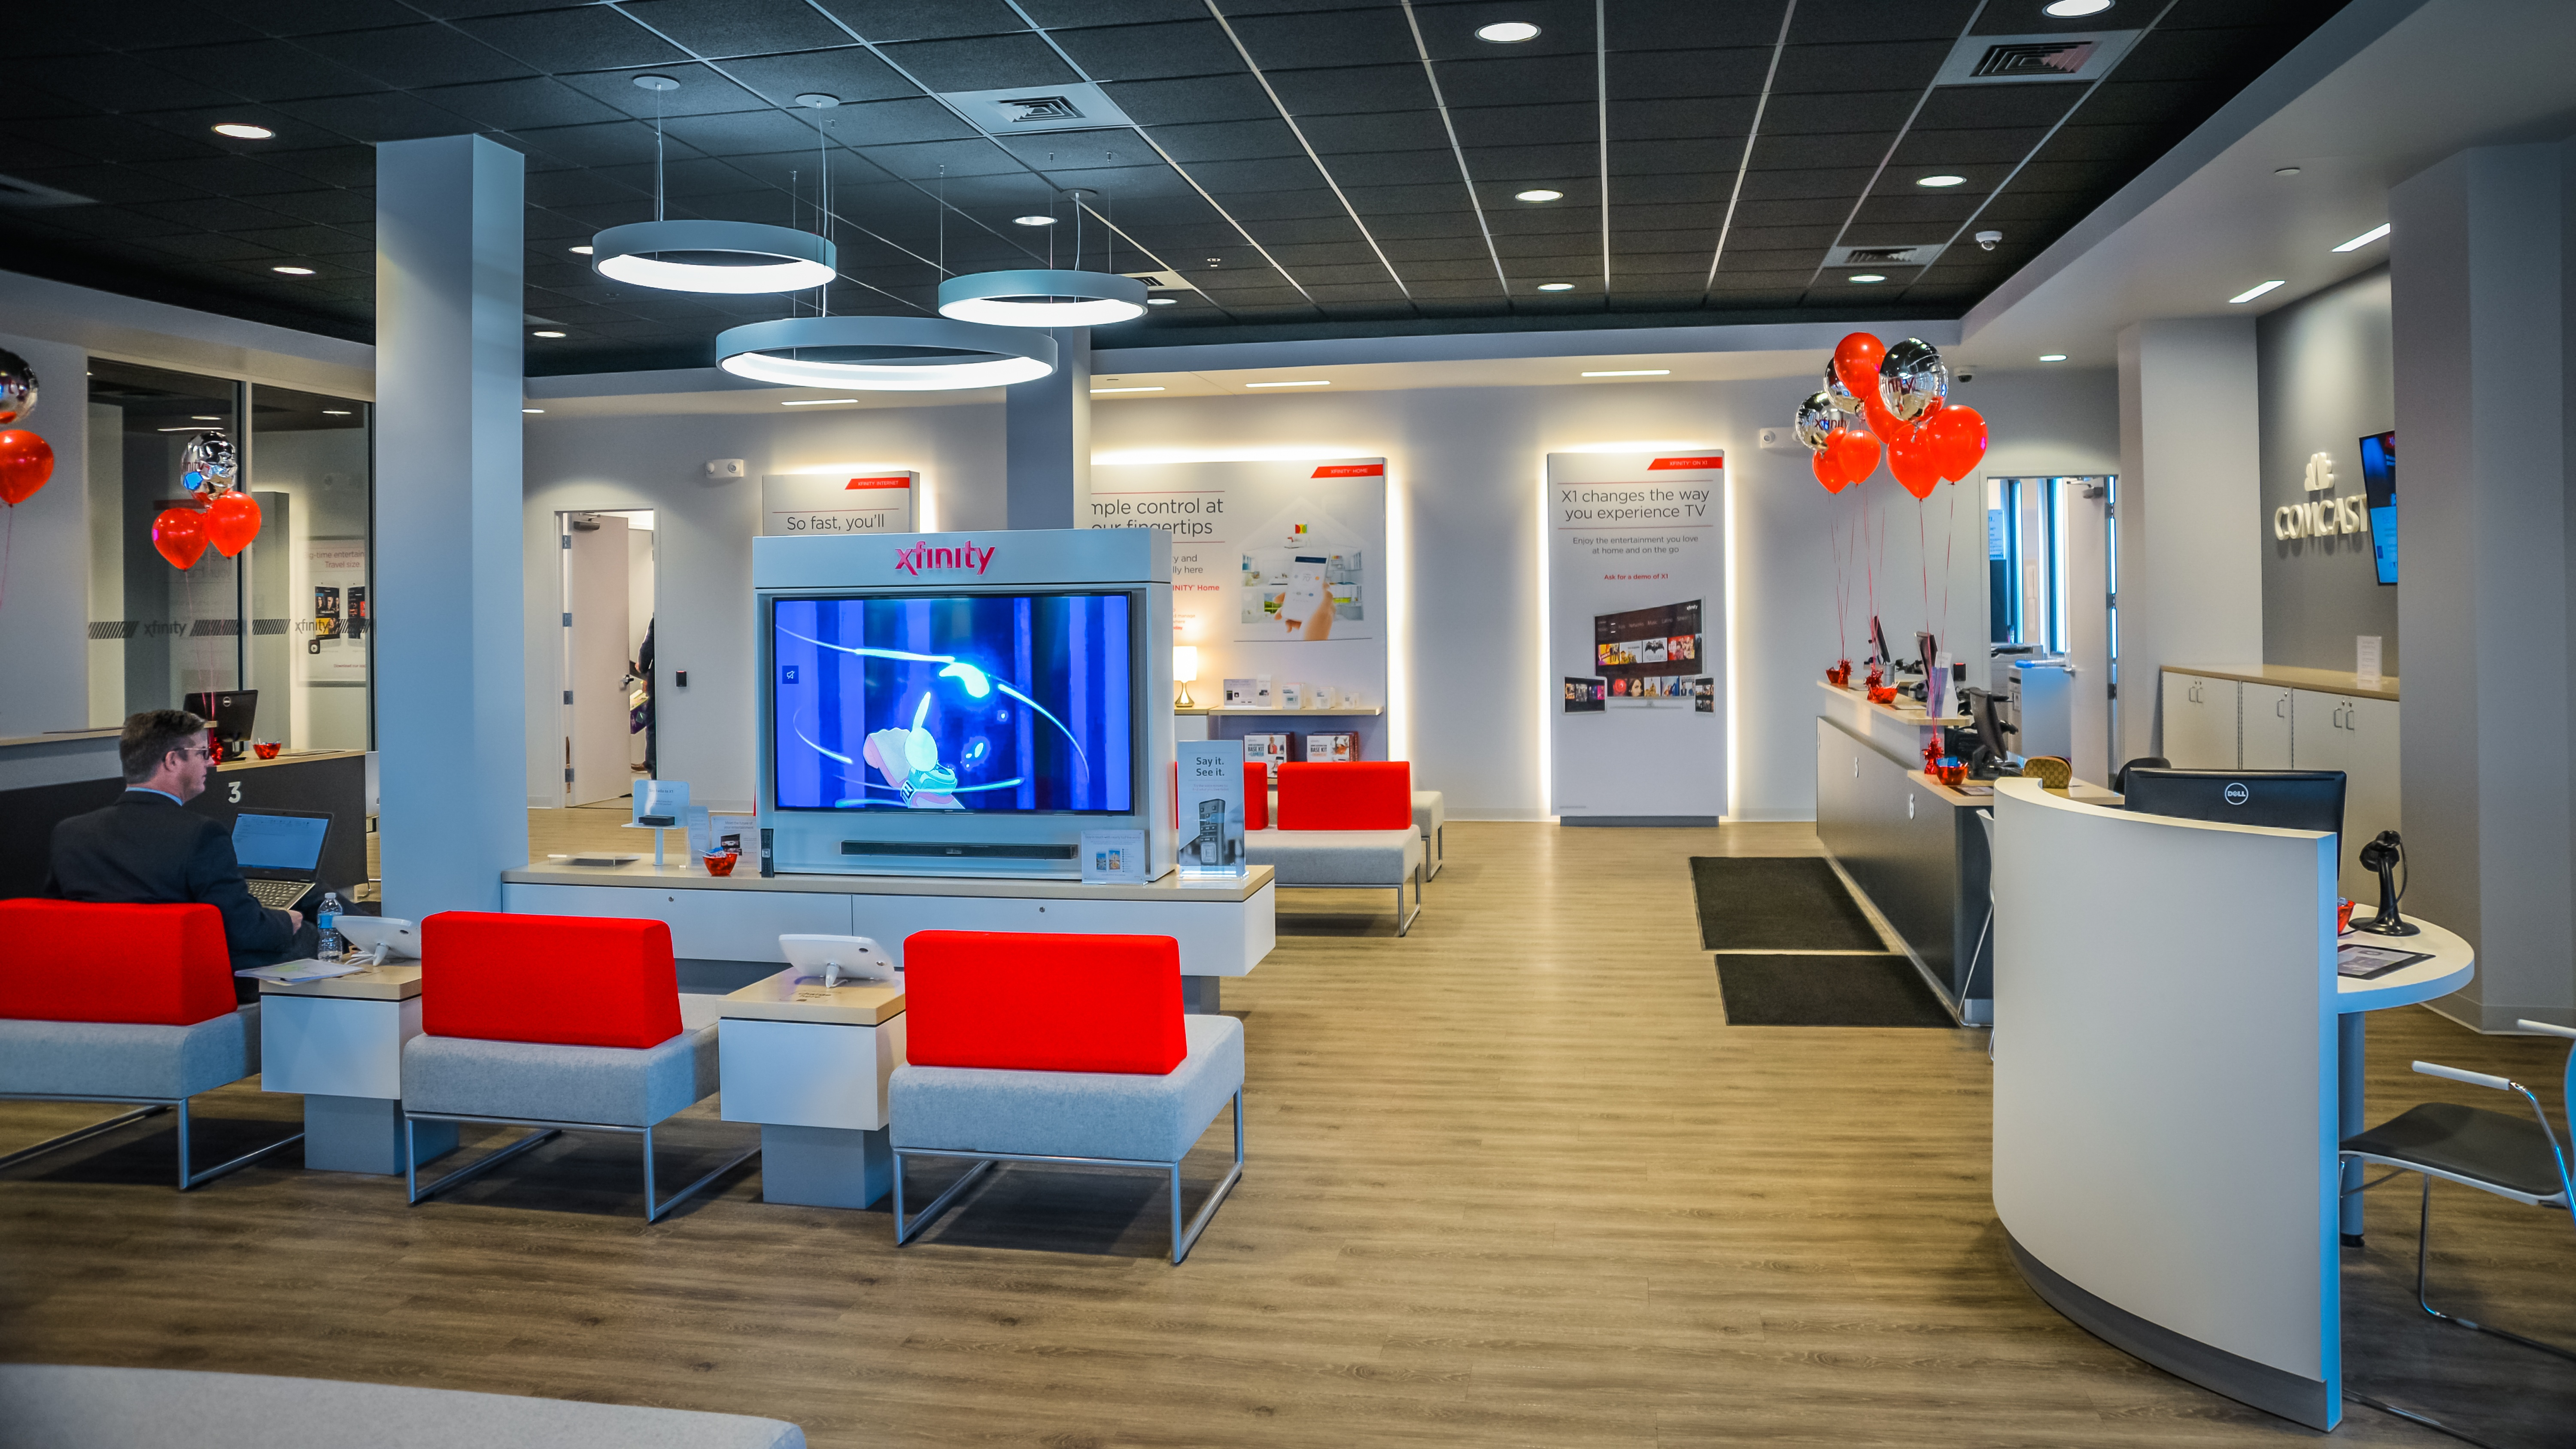 Comcast Tv And Internet >> Comcast to open its First Decatur area XFINITY Store